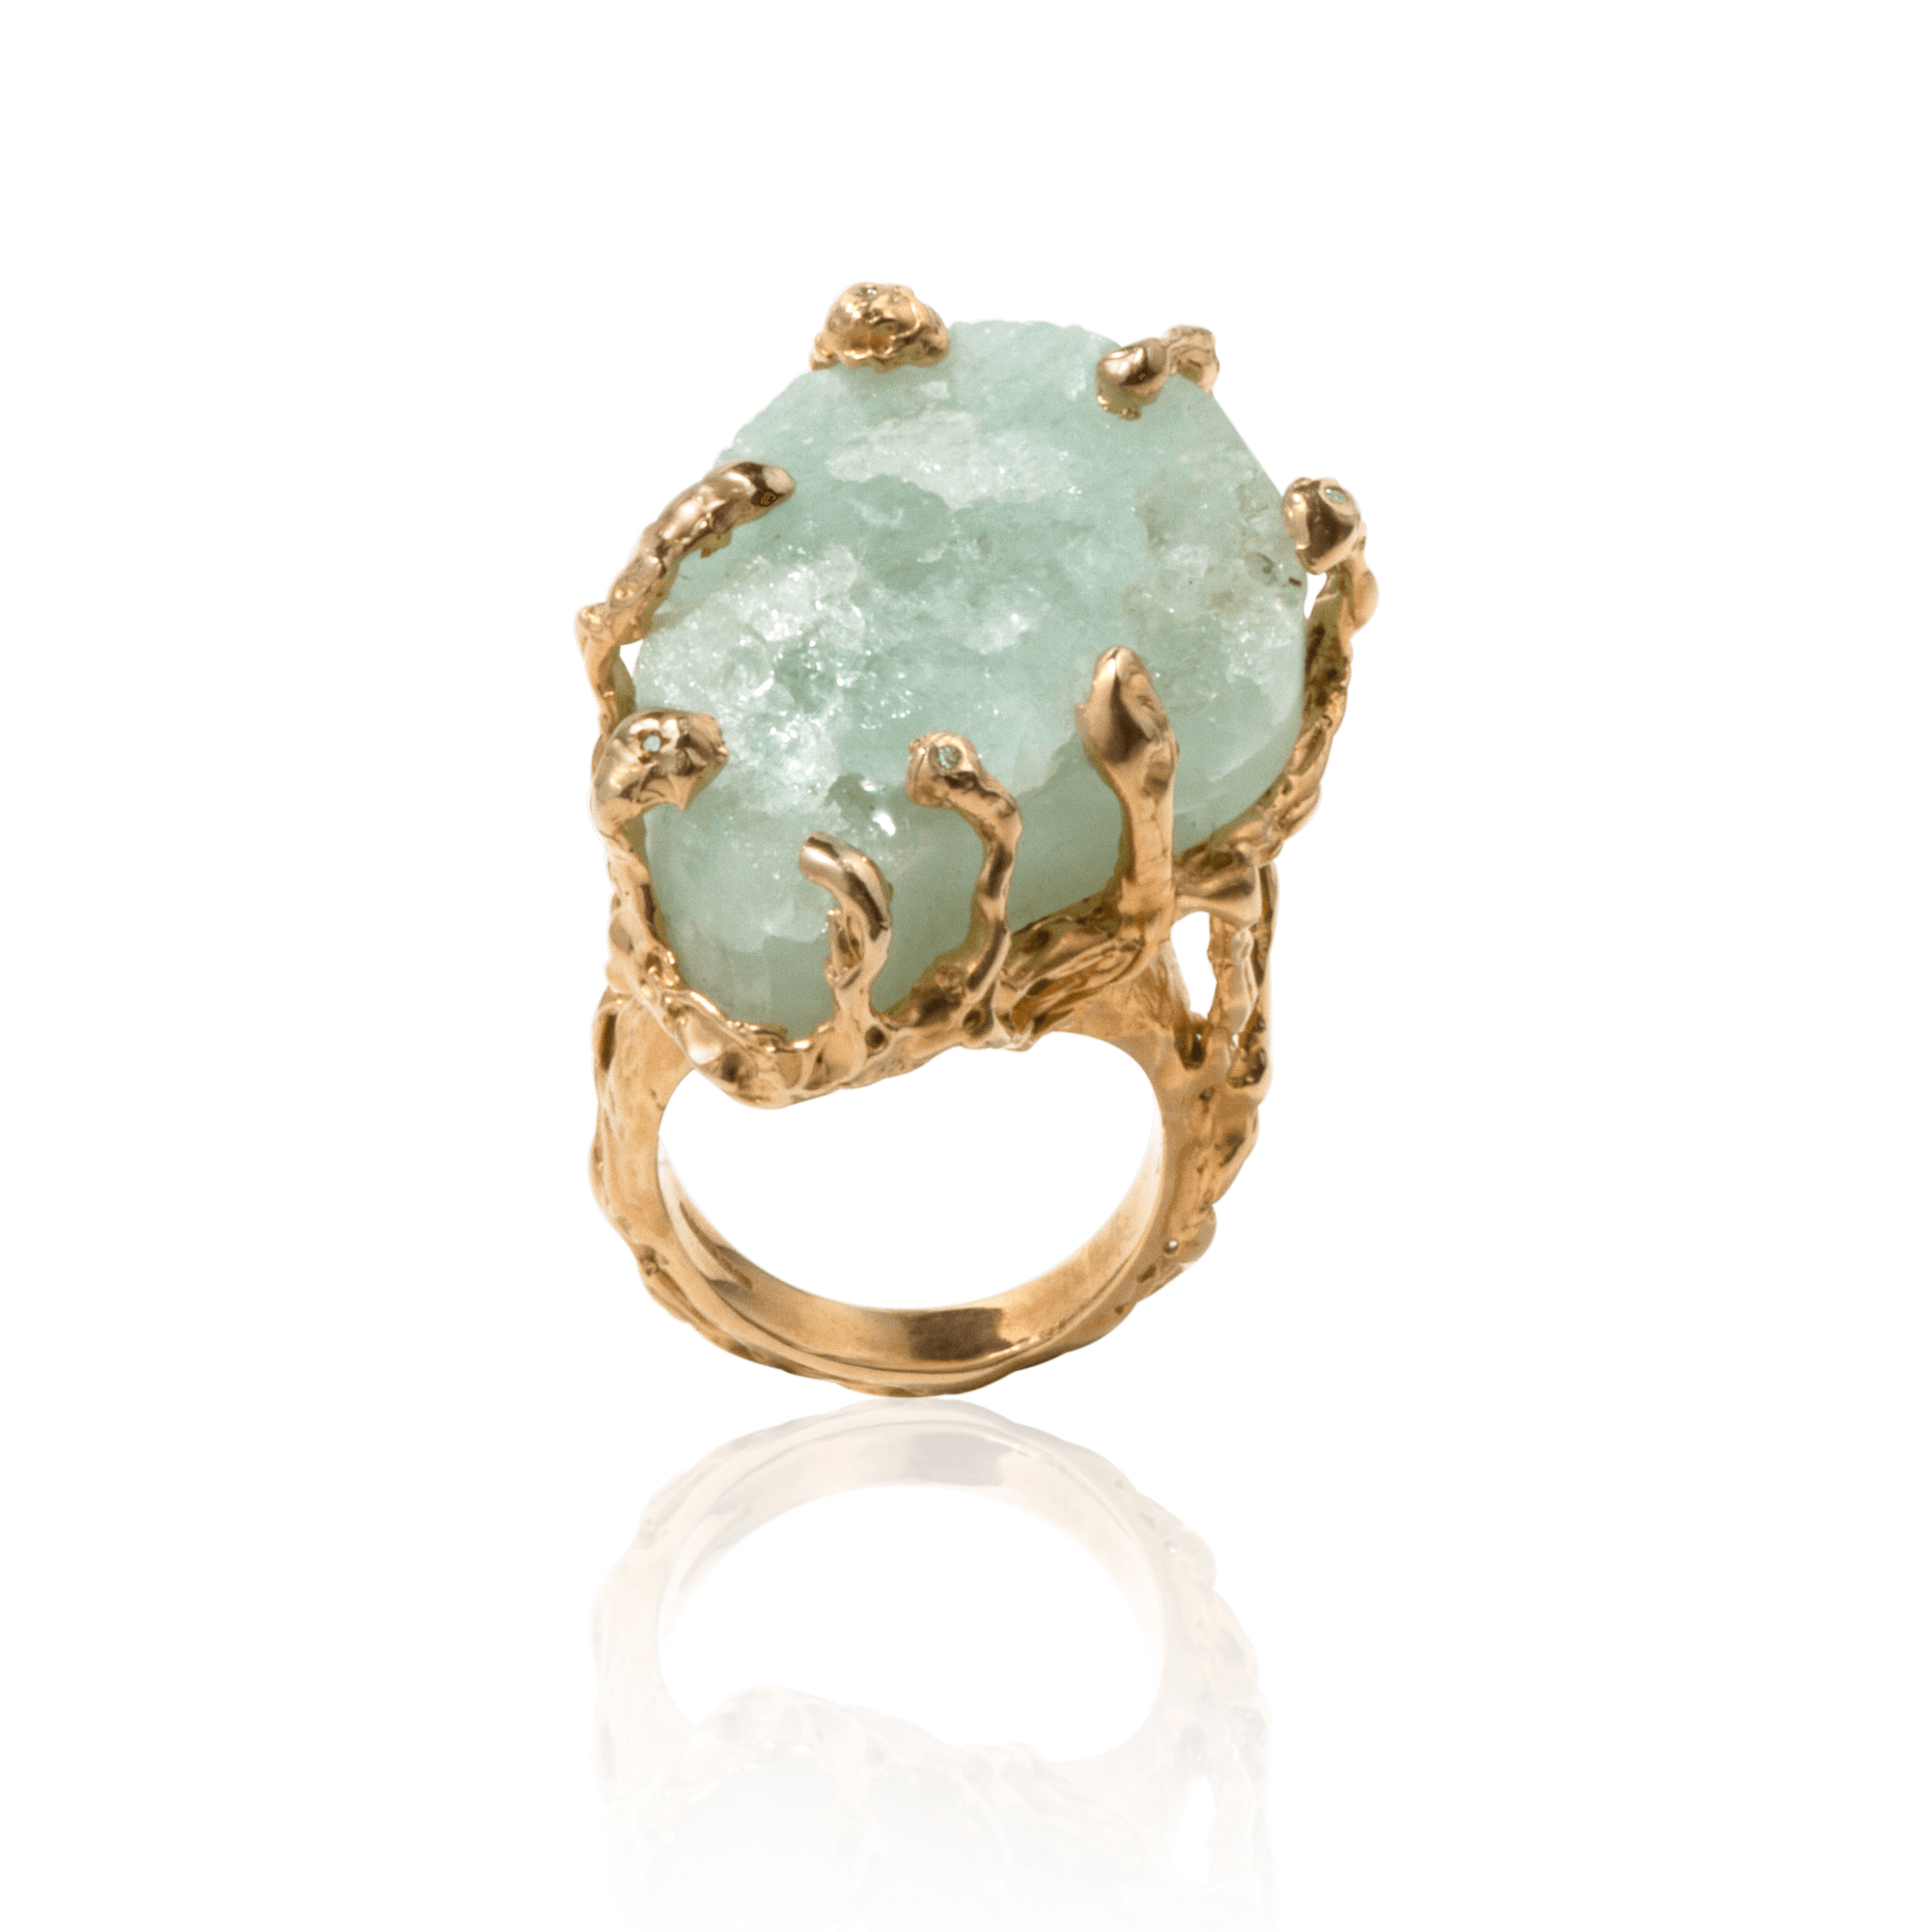 Gold ring set with rough aquamarine and white diamonds